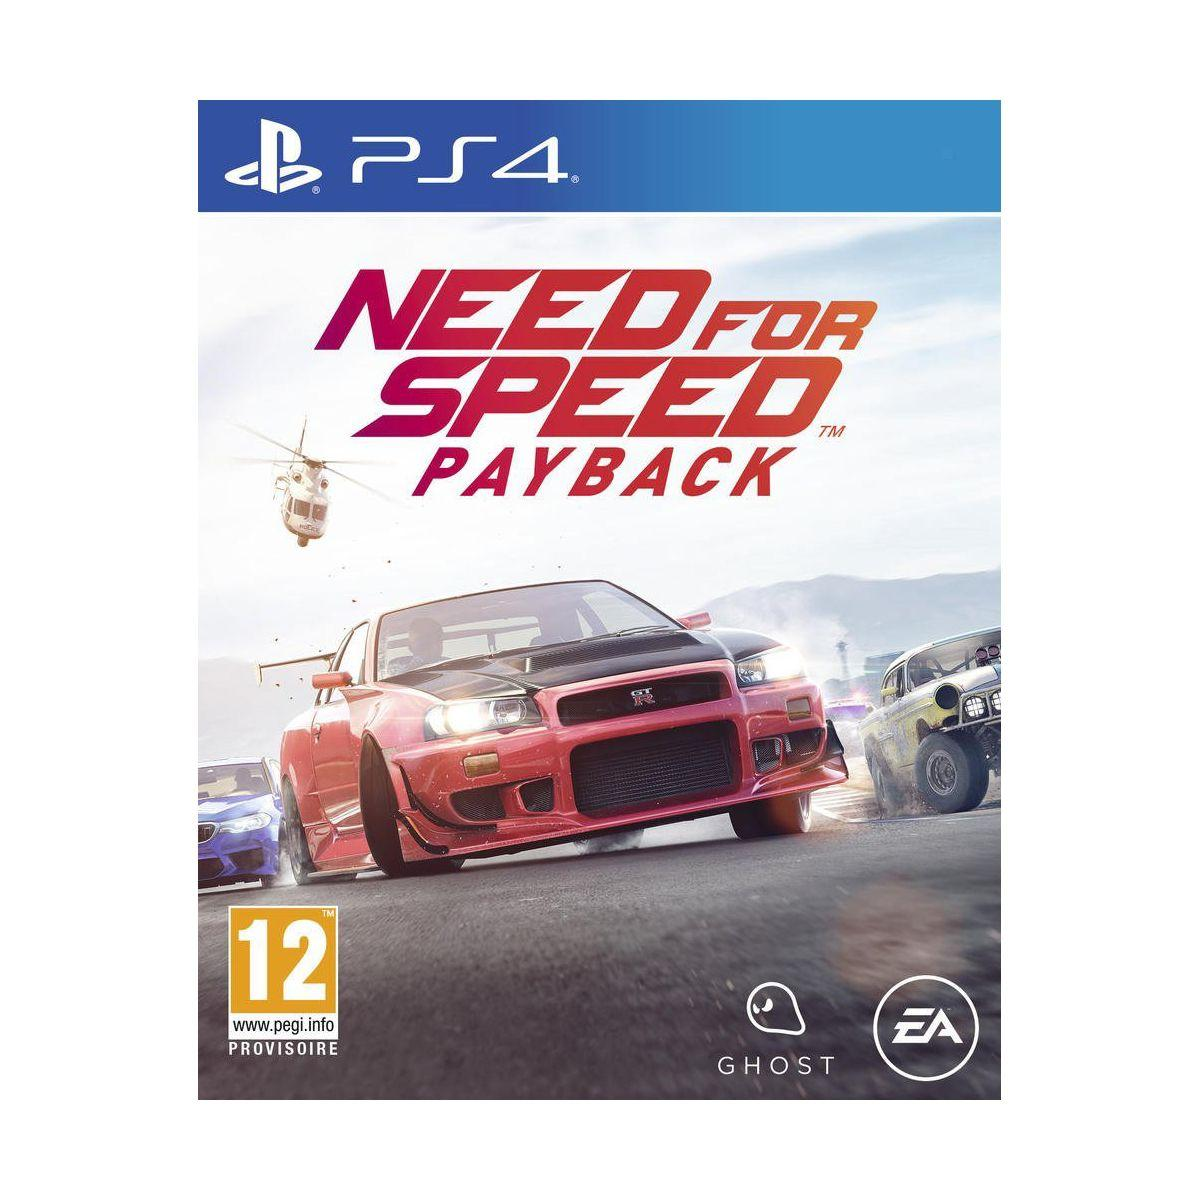 Jeu ps4 electronic arts need for speed payback (photo)